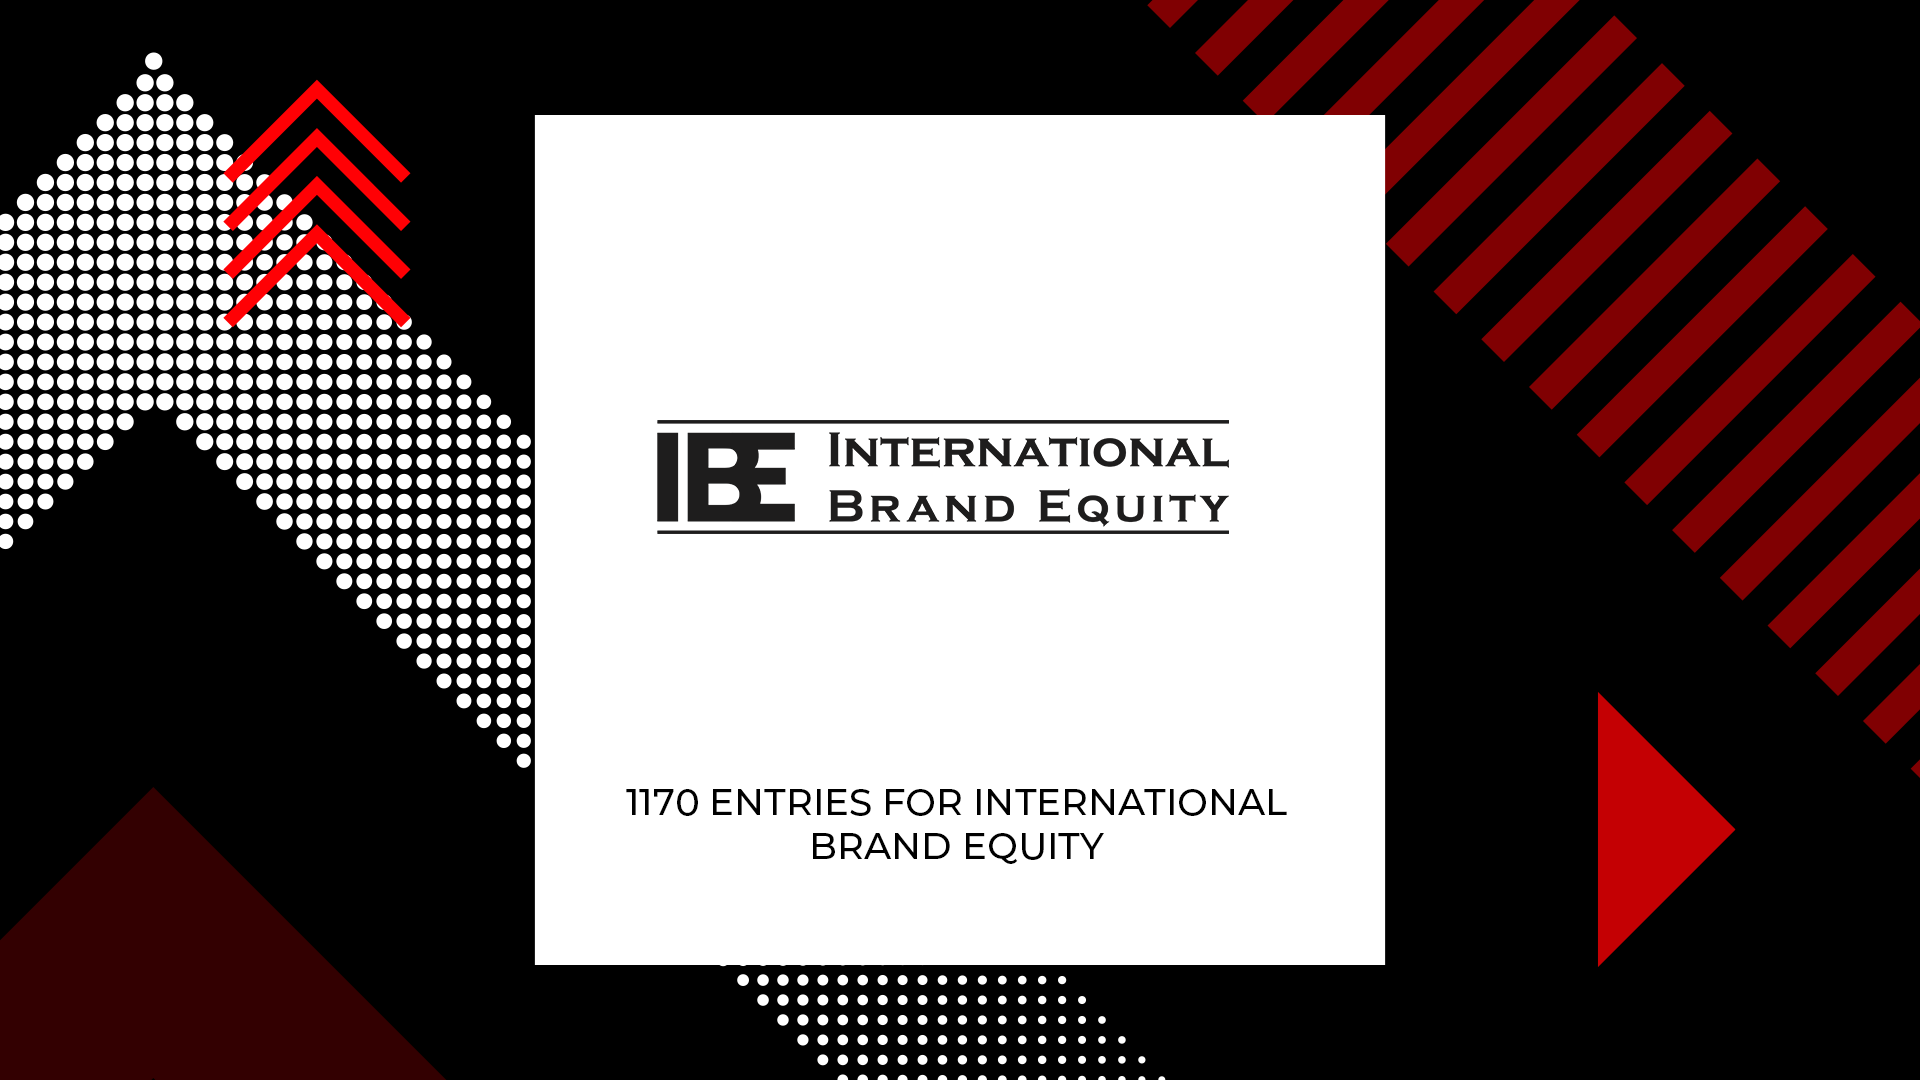 1170 Entries for International Brand Equity Awards 2018 Asia